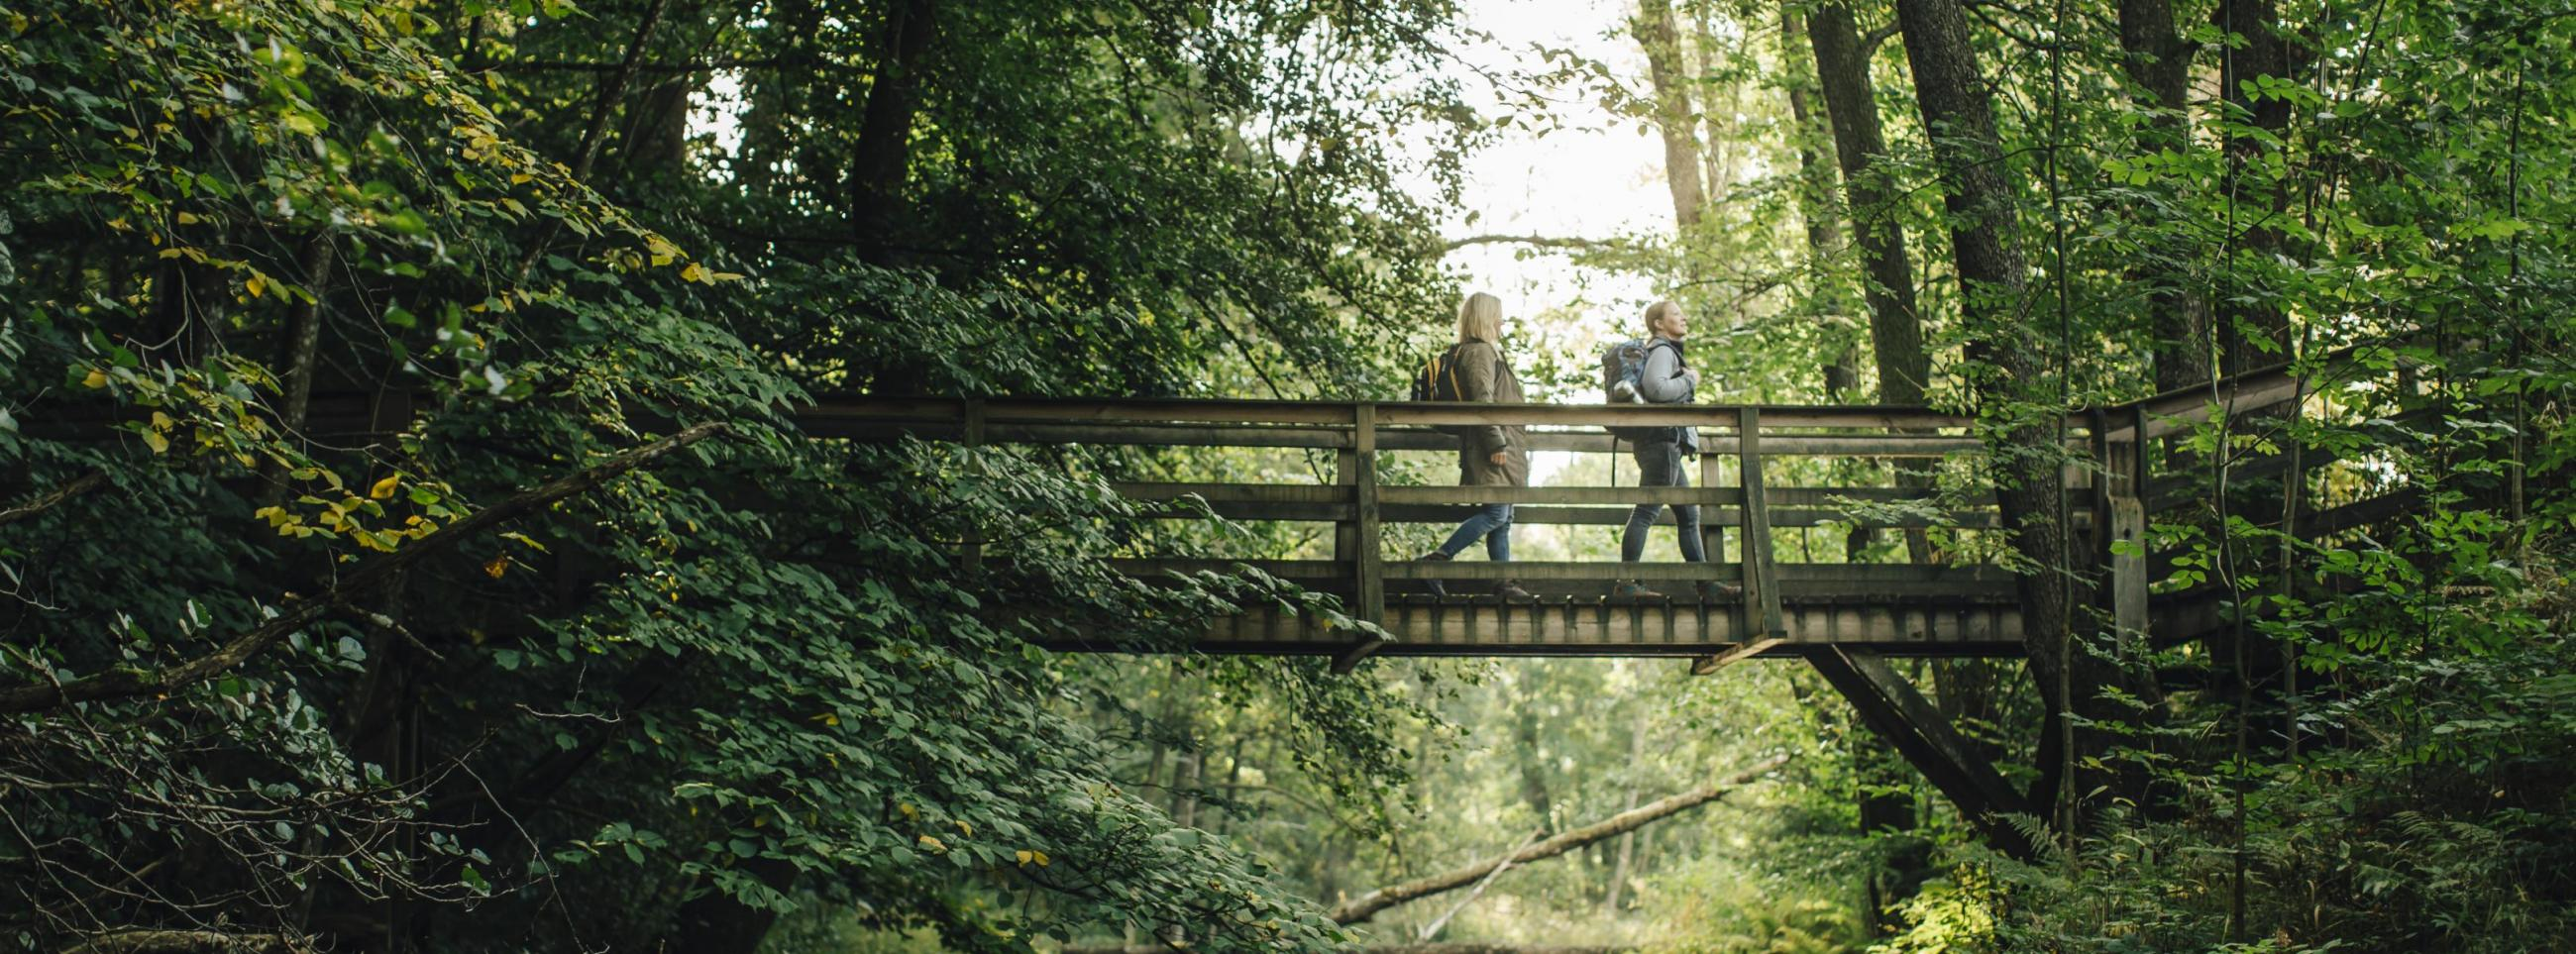 Hiking on the Skåneleden trail